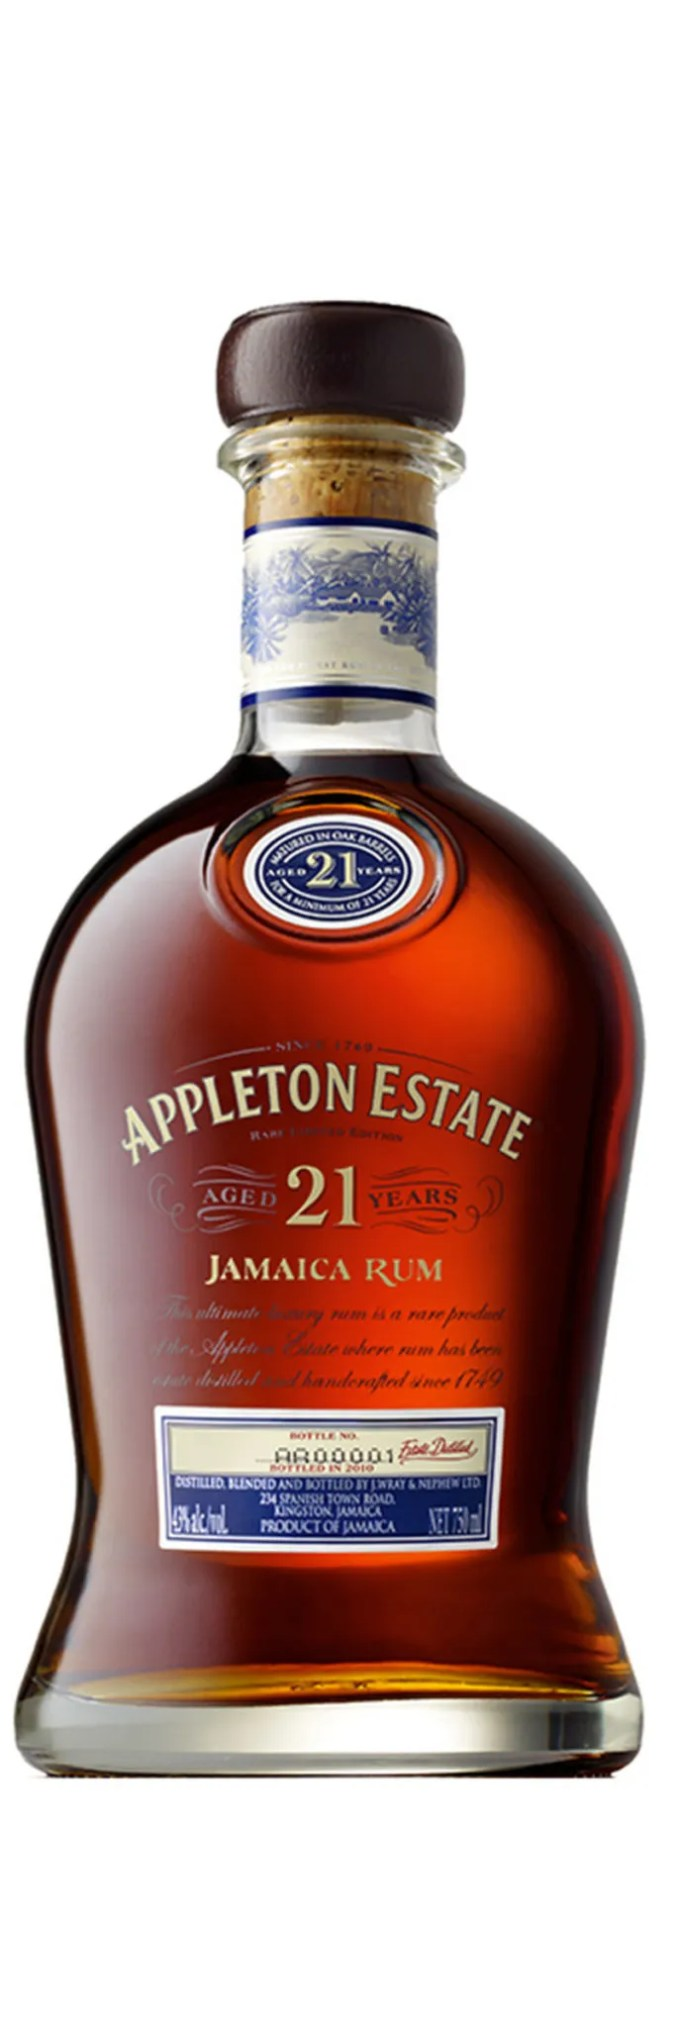 Appleton Estate 21 year old luxury aged rum from Jamaica, bottled at 43% abv.